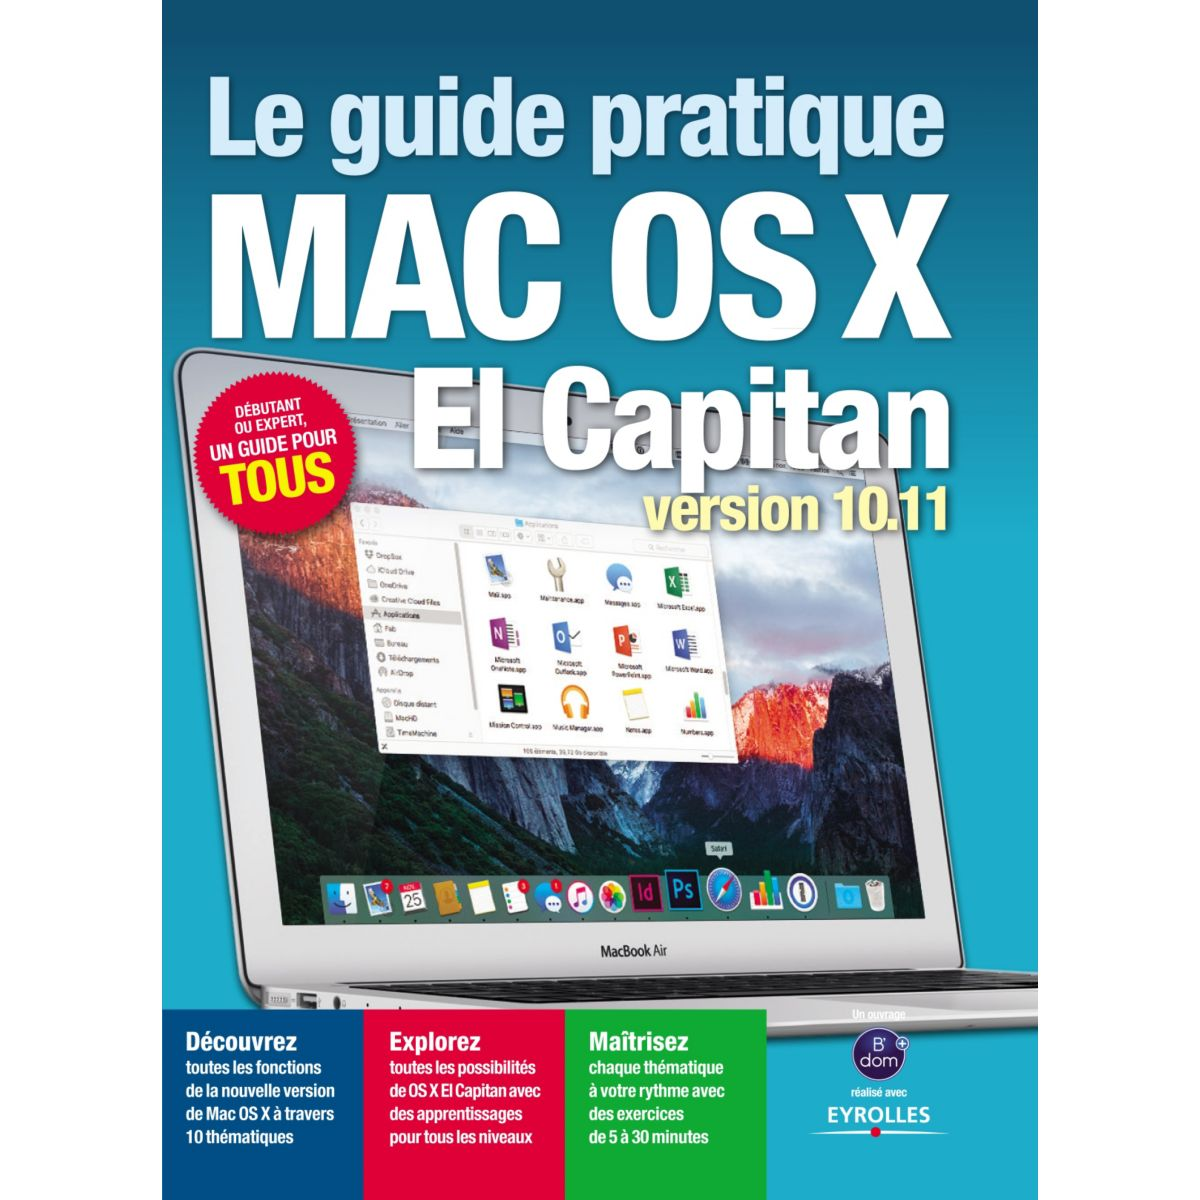 Librairie informatique BDOM+ L'univers Ordi Apple v2 (photo)